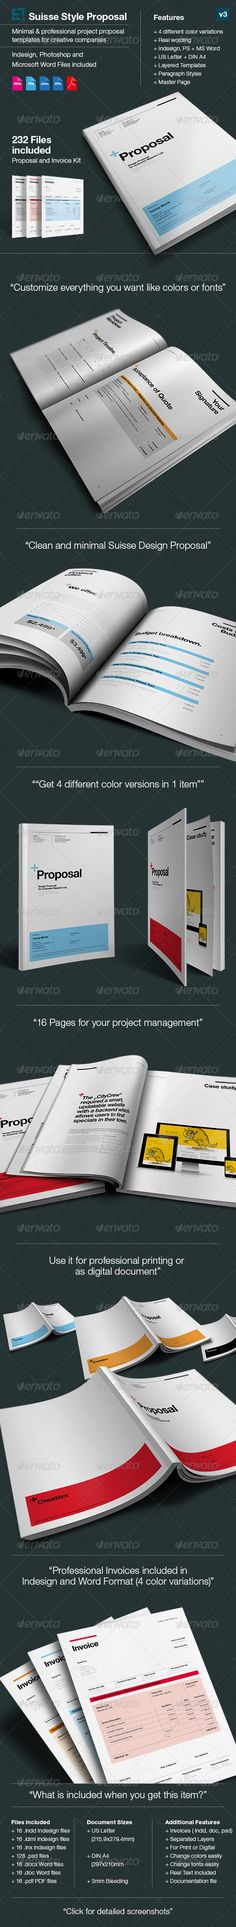 cea719f284a07febaa4ac243de76a33c--indesign-templates-stationery-templates jpg - project proposal word template